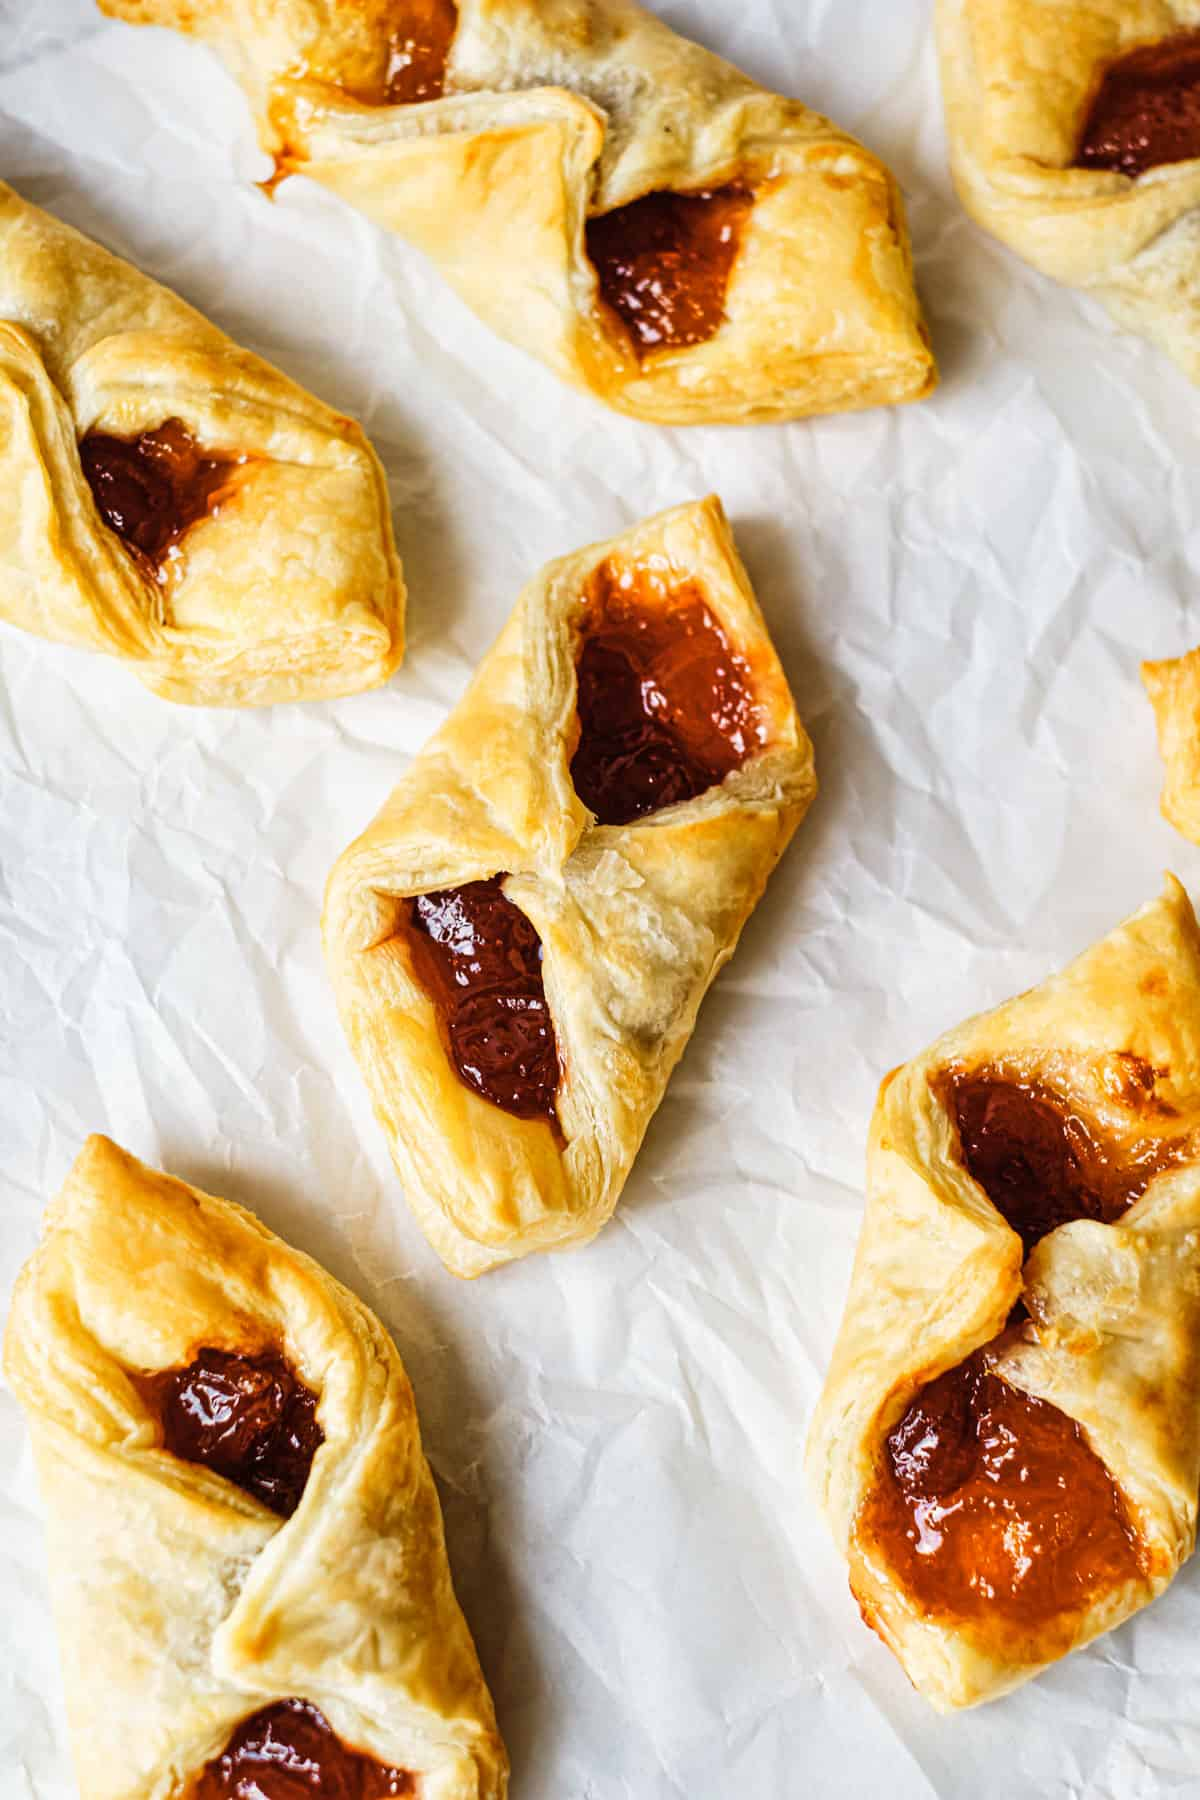 the finished breakfast puff pastry bites placed on parchment paper